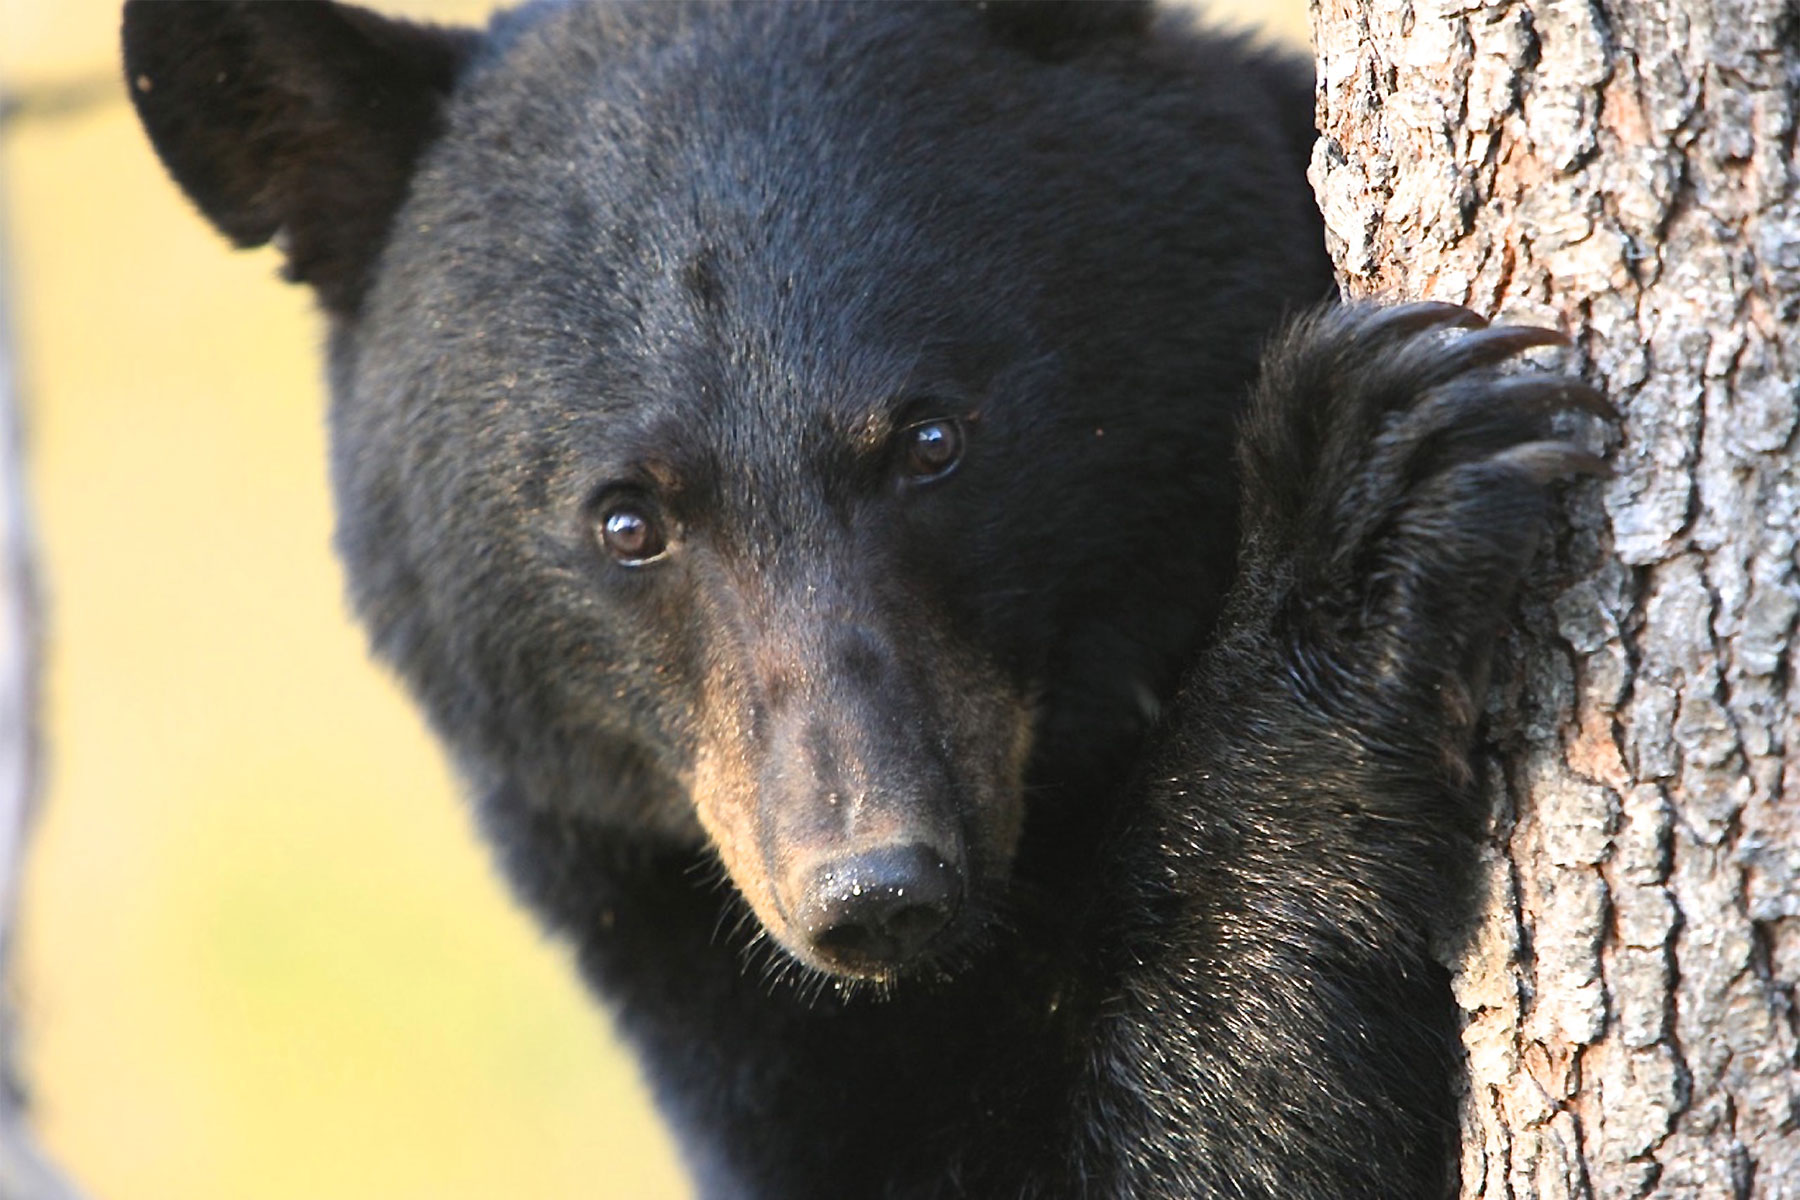 Nationally Recognized Wildlife Biologist to Present Talk on Black Bears Wednesday, Oct 26 in Chester